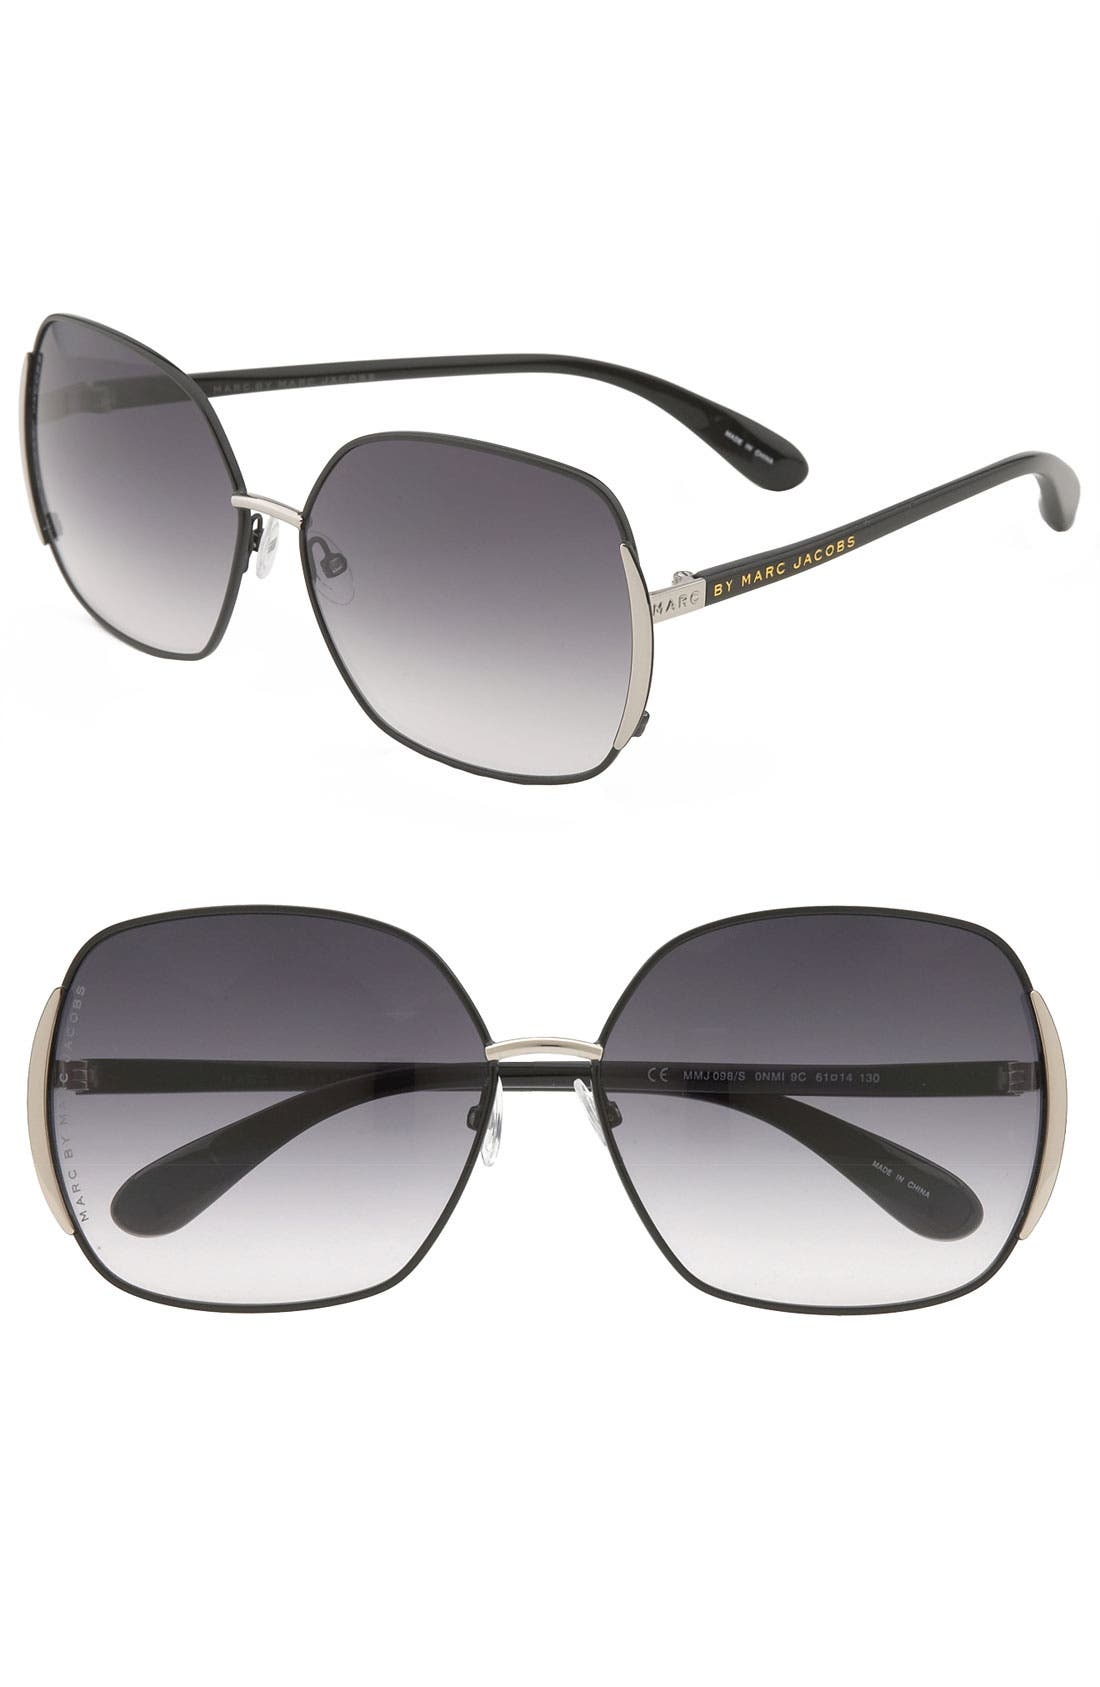 61mm Vintage Inspired Oversized Sunglasses,                         Main,                         color, 001